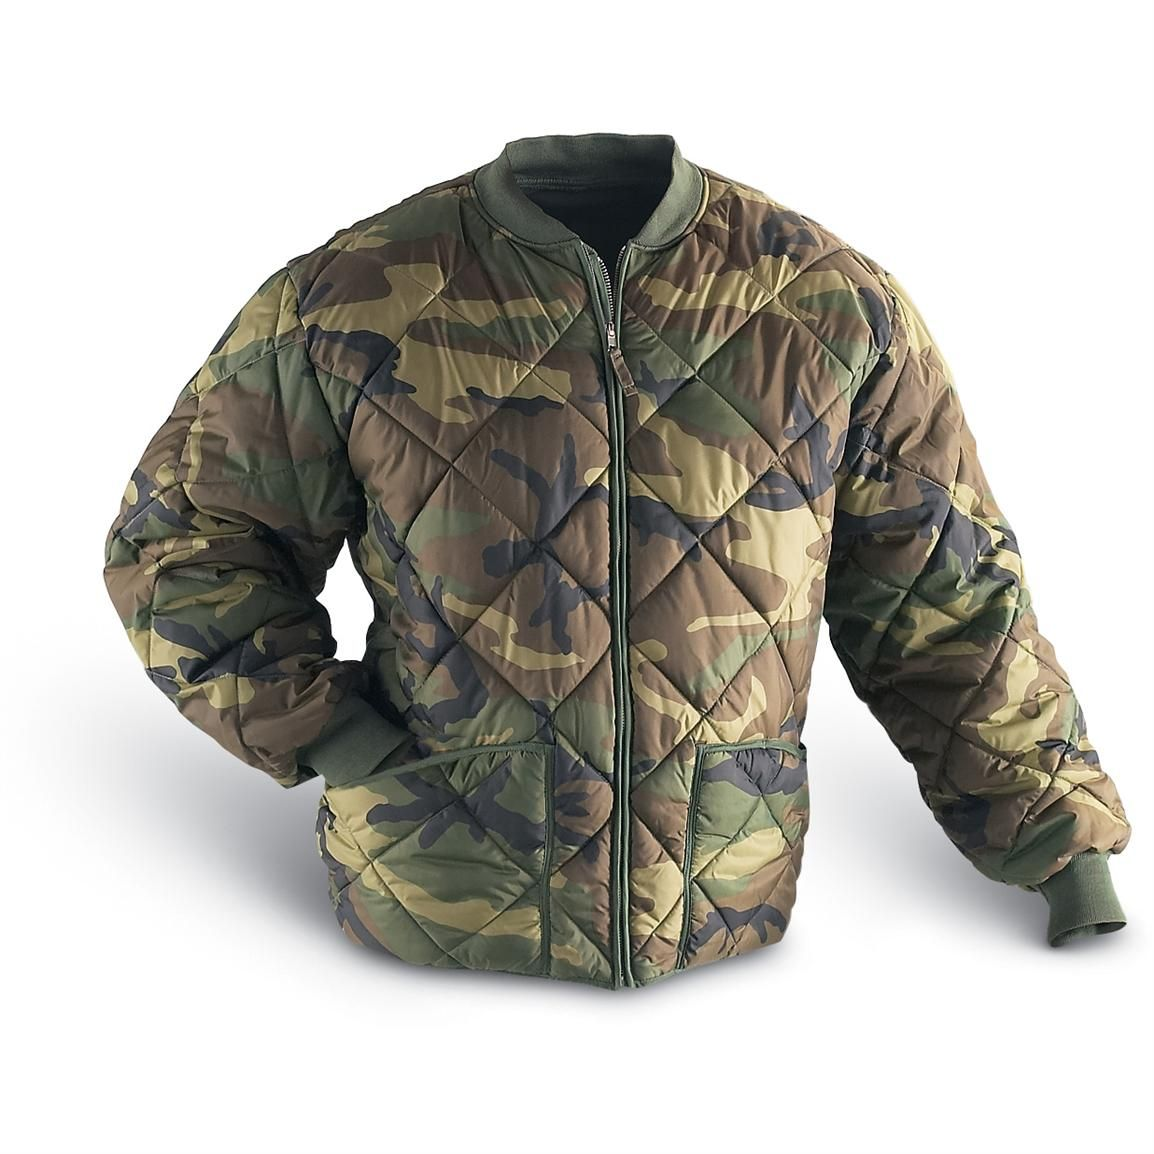 Military insulated diamond quilted flight jacket 95897